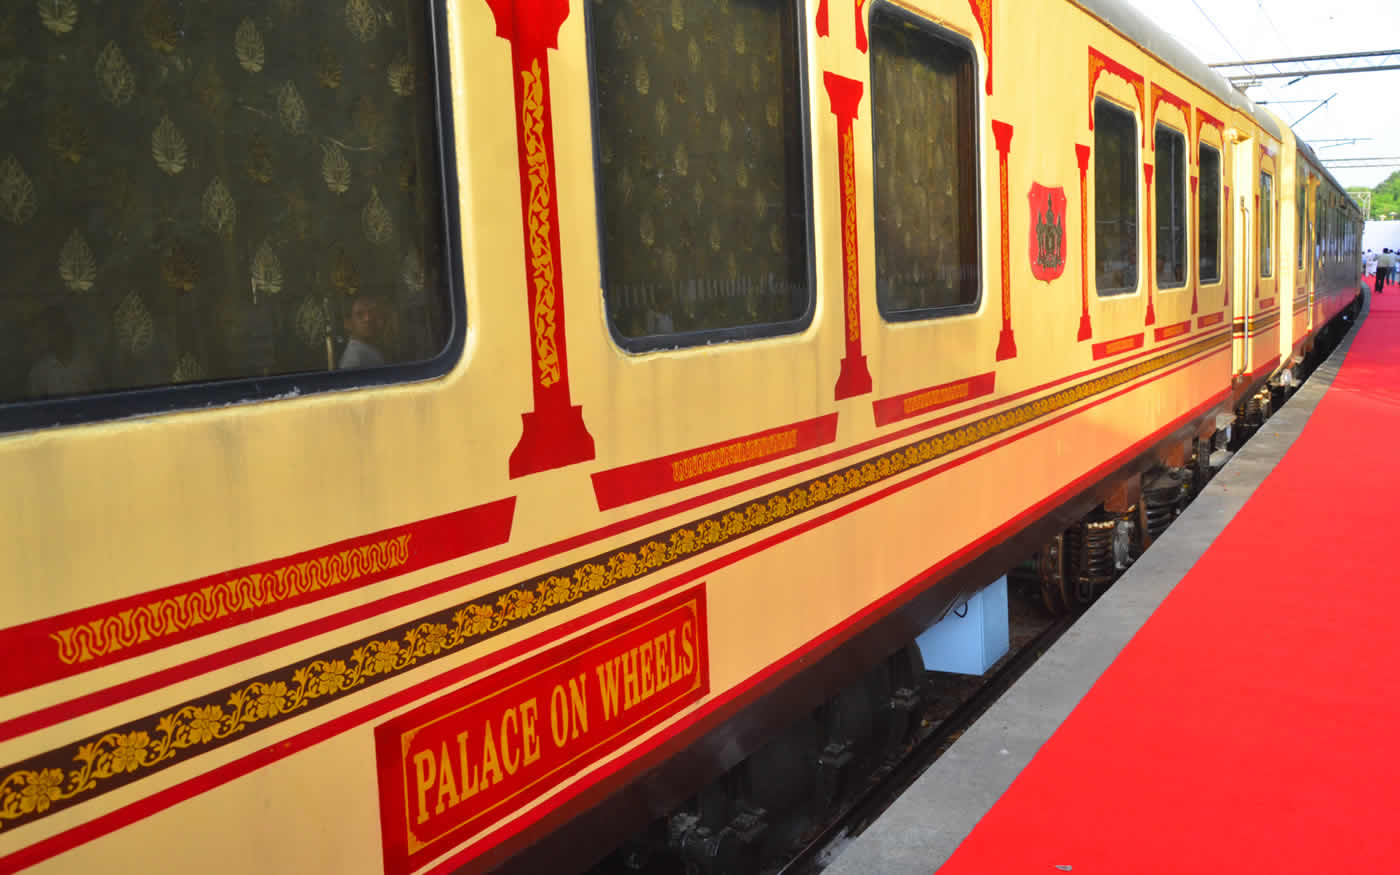 palace on wheels Palace on wheels is a luxury train in india that welcomes you with open arms to experience the heartwarming hospitality embark on a palace on wheels tour to enjoy the royal life style which once only kings used to enjoy.